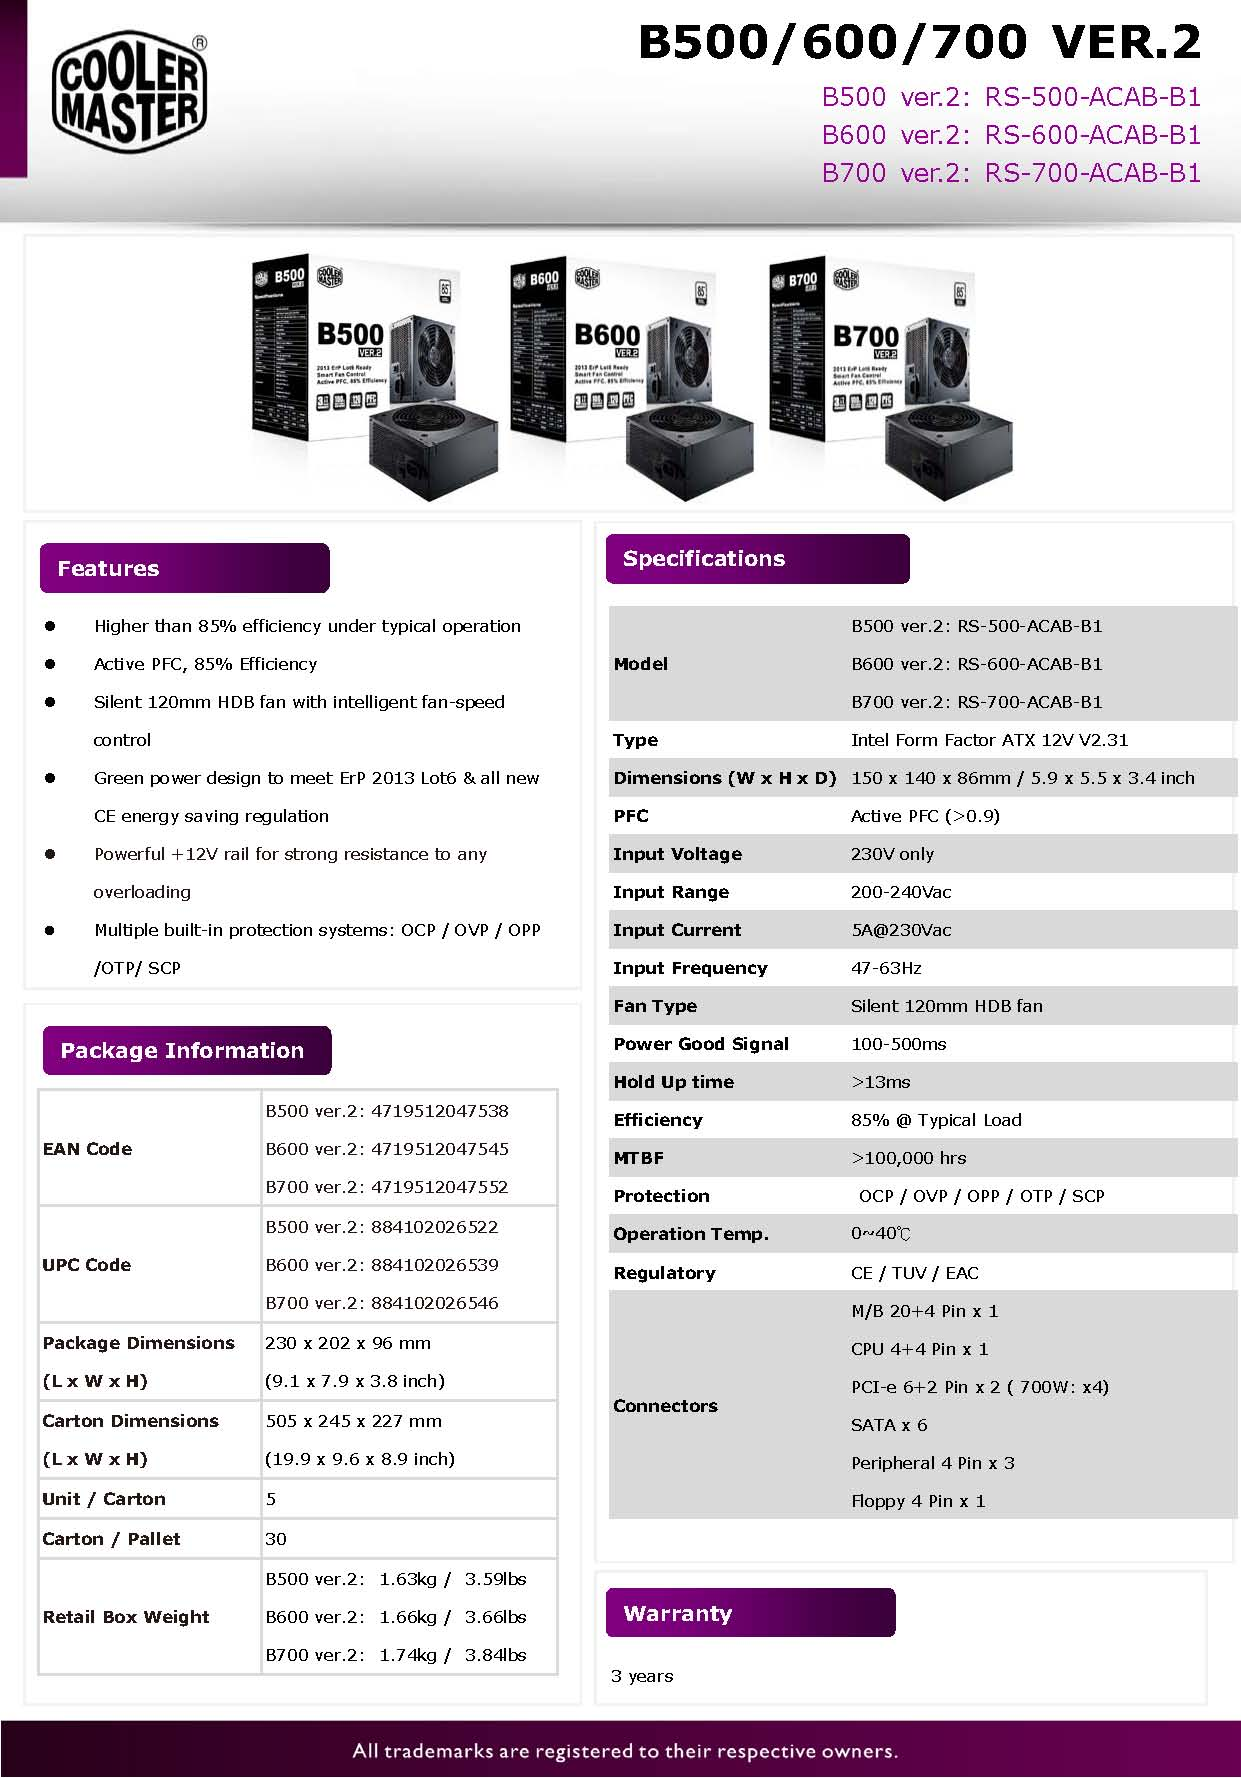 Cooler Master B-series ver.2 Power Supplies Now Available in Malaysia 11